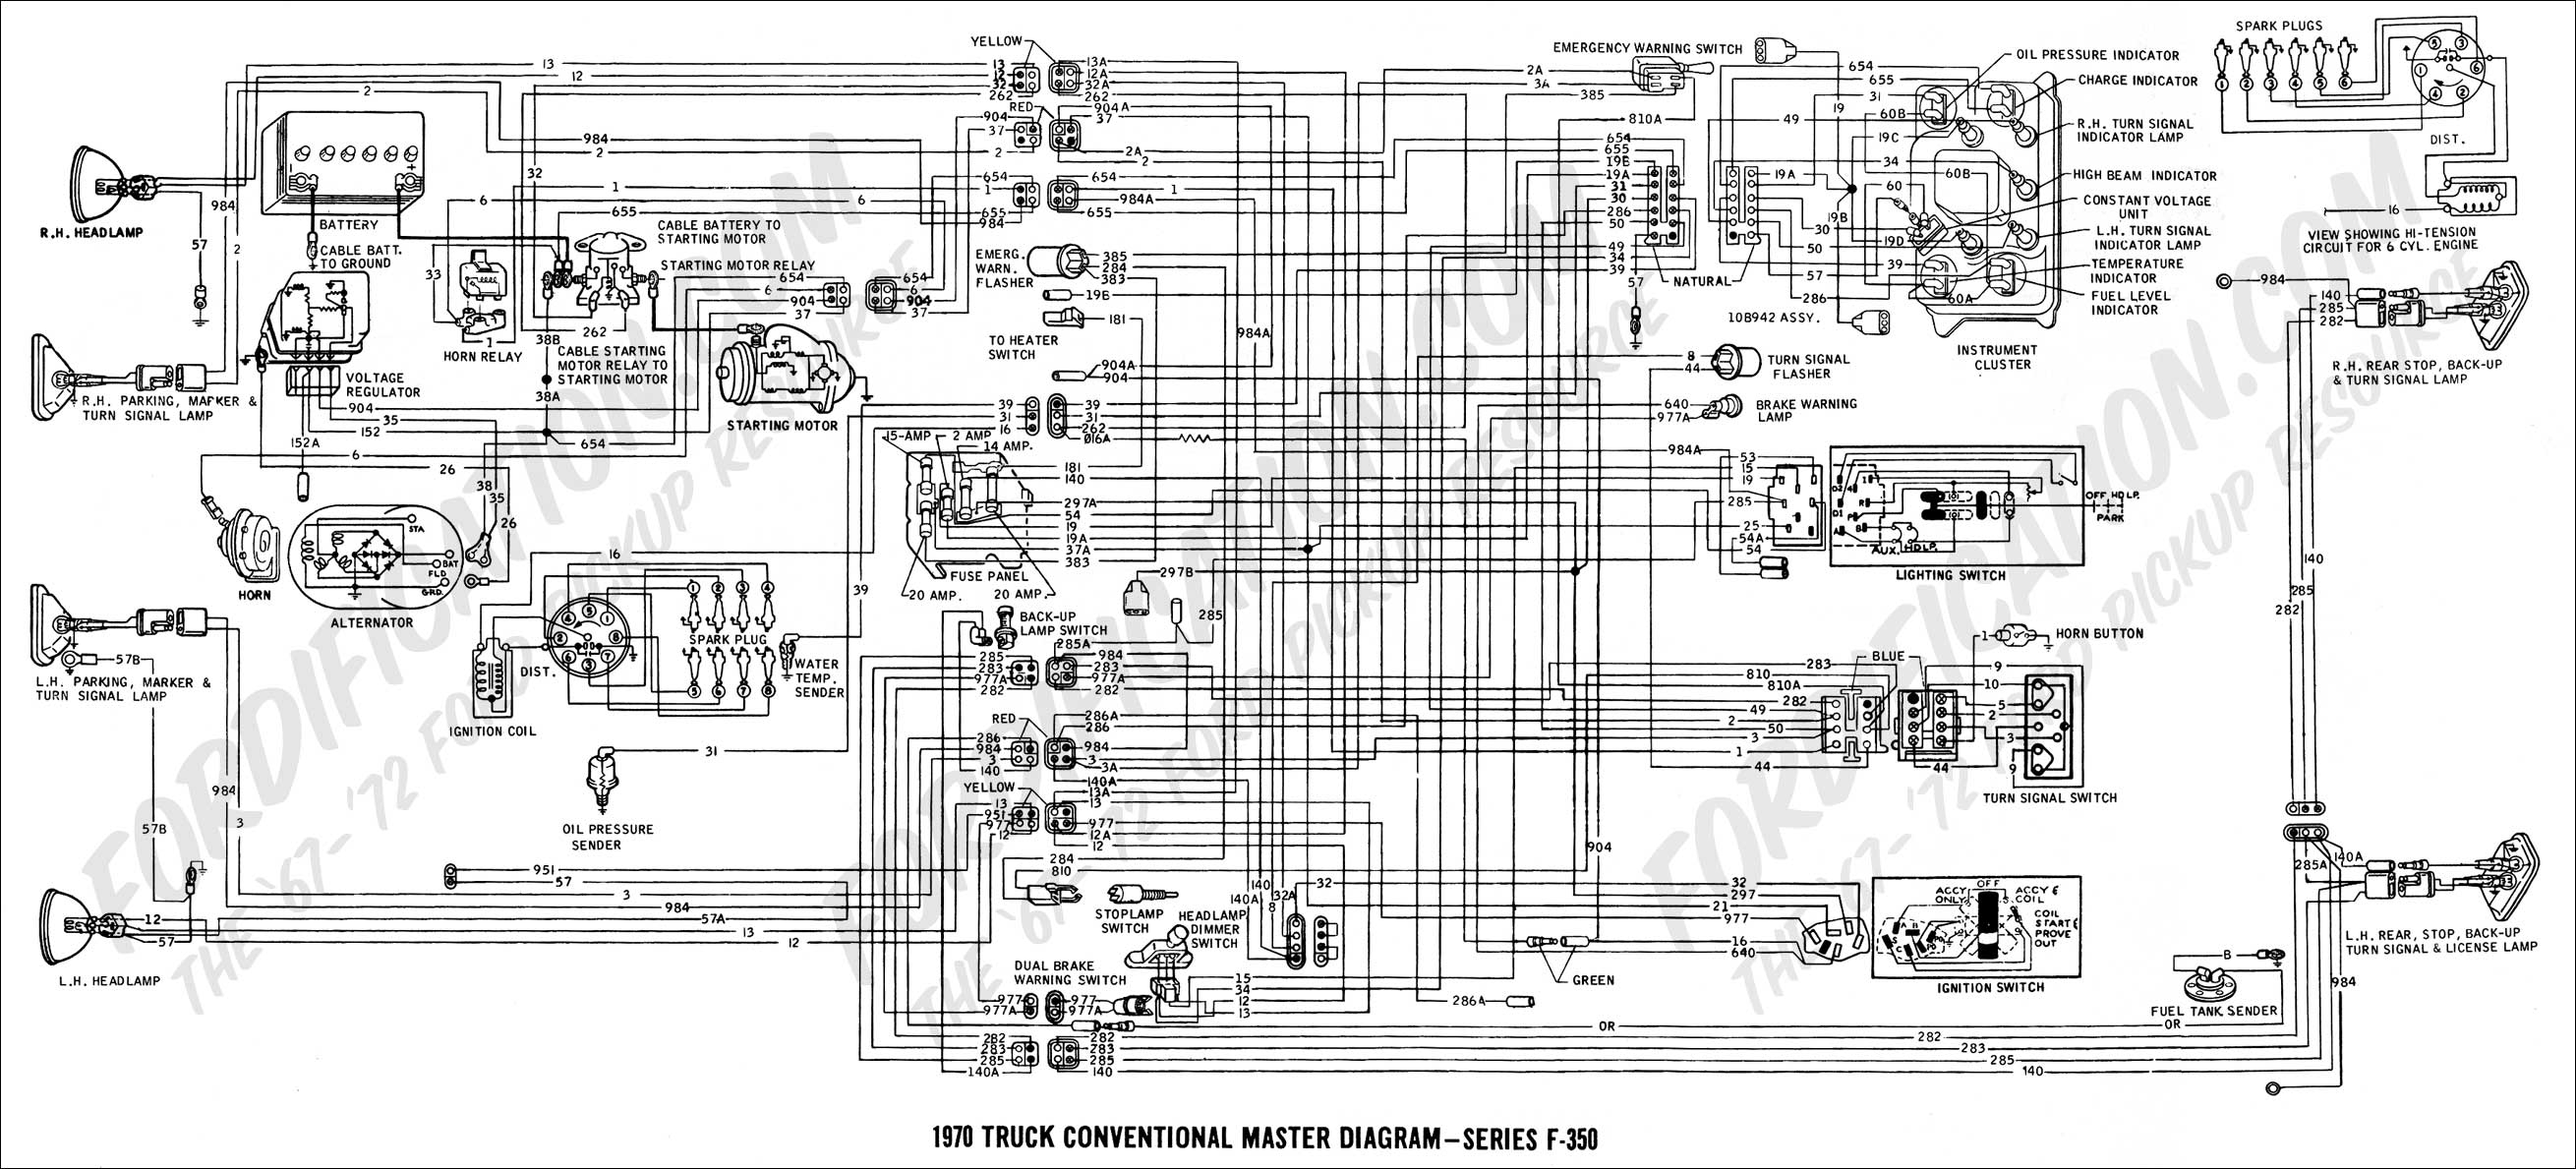 2001 ford mustang wiring diagram Collection-69 Ford Mustang Wiring Diagram Ideas New Harness In 2007 20-g